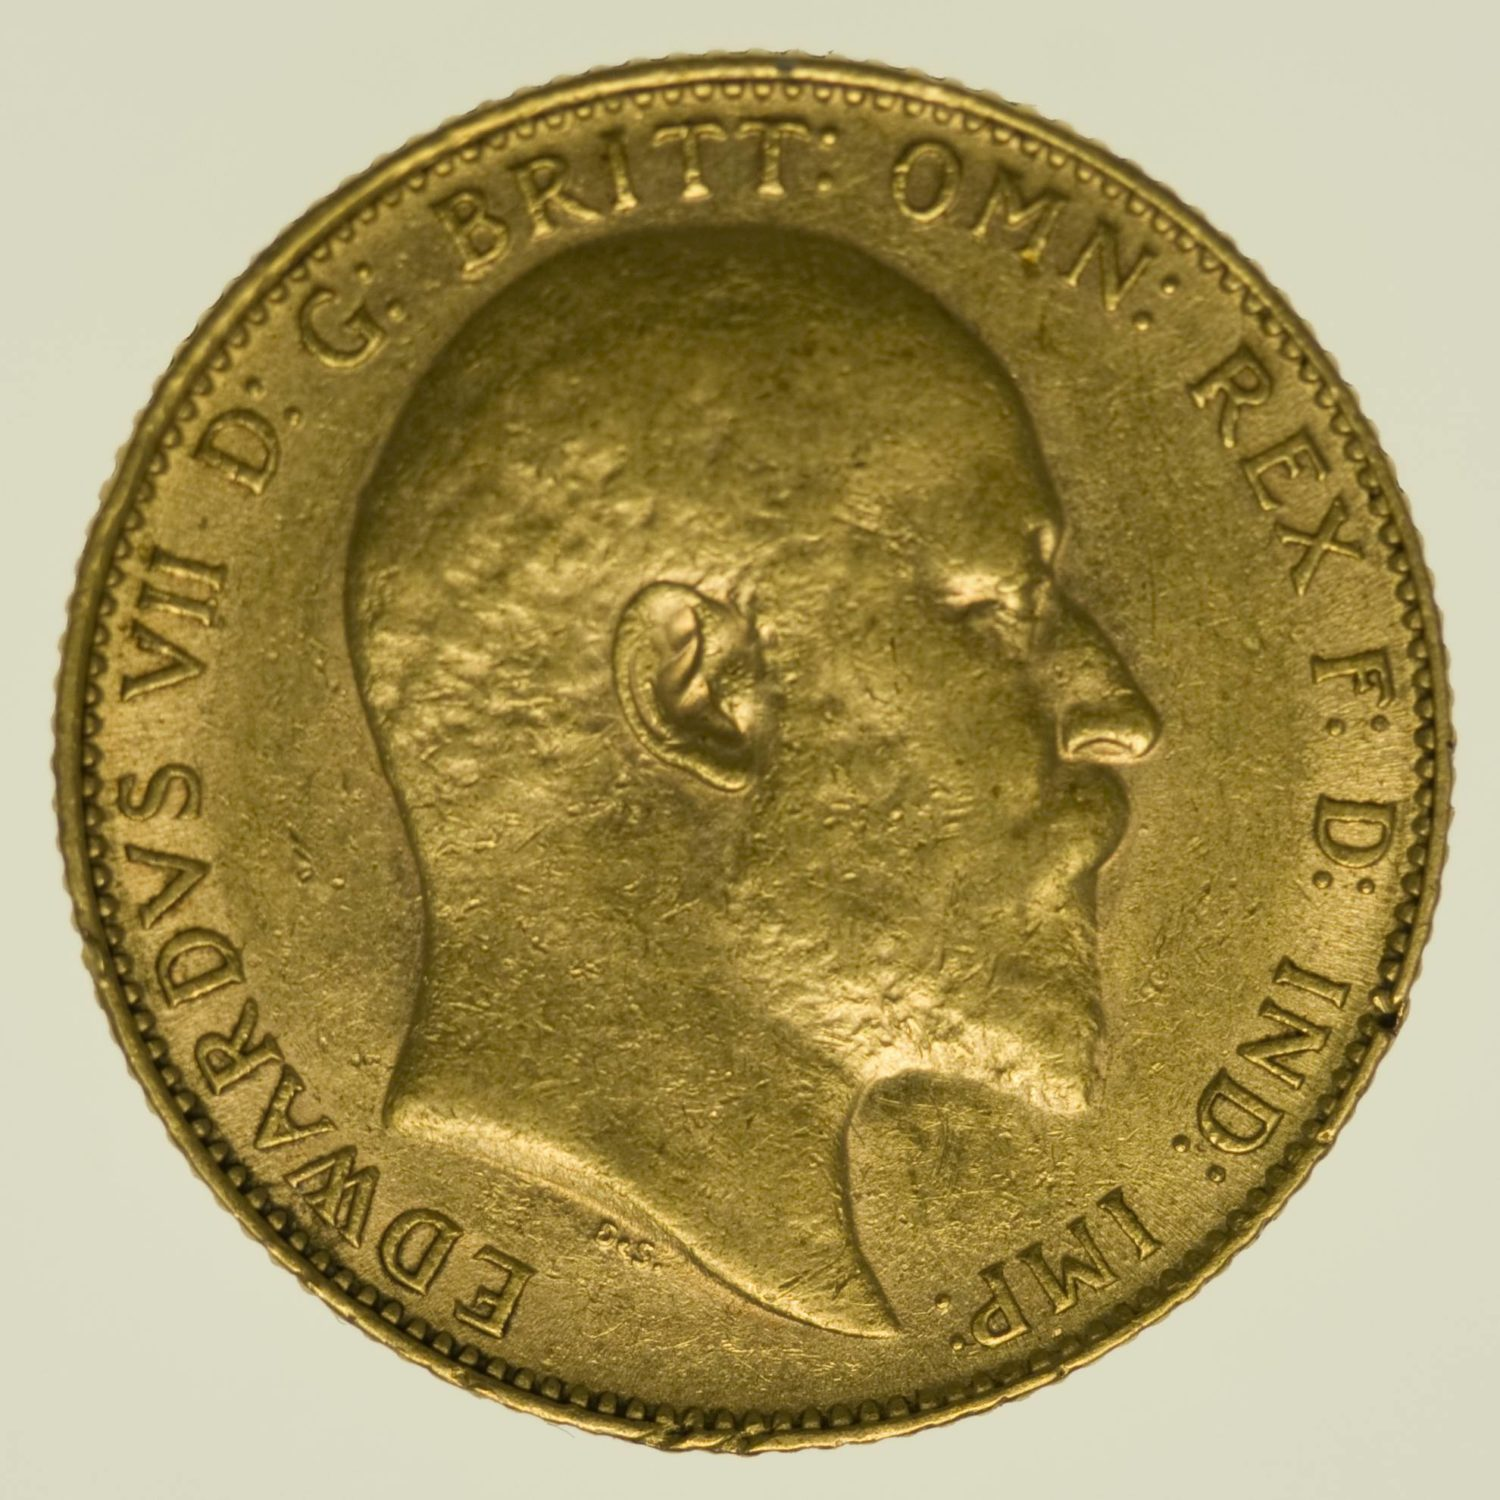 Grossbritannien Edward VII. Sovereign 1908 Gold 7,32 Gramm fein RAR